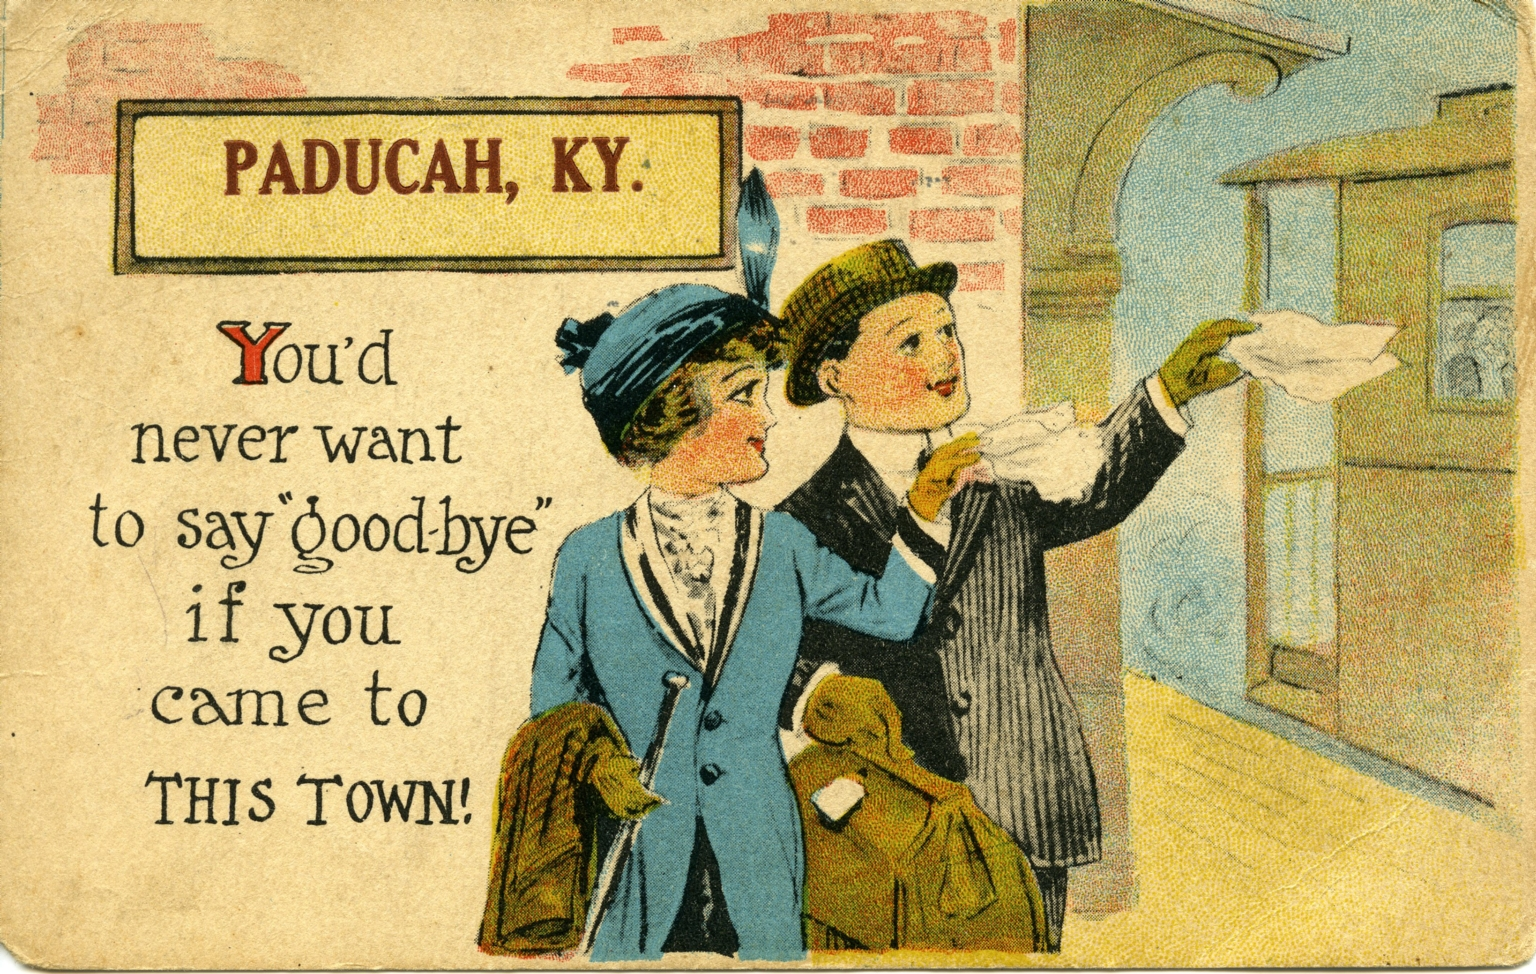 Promotional post card for city of Paducah (KY)